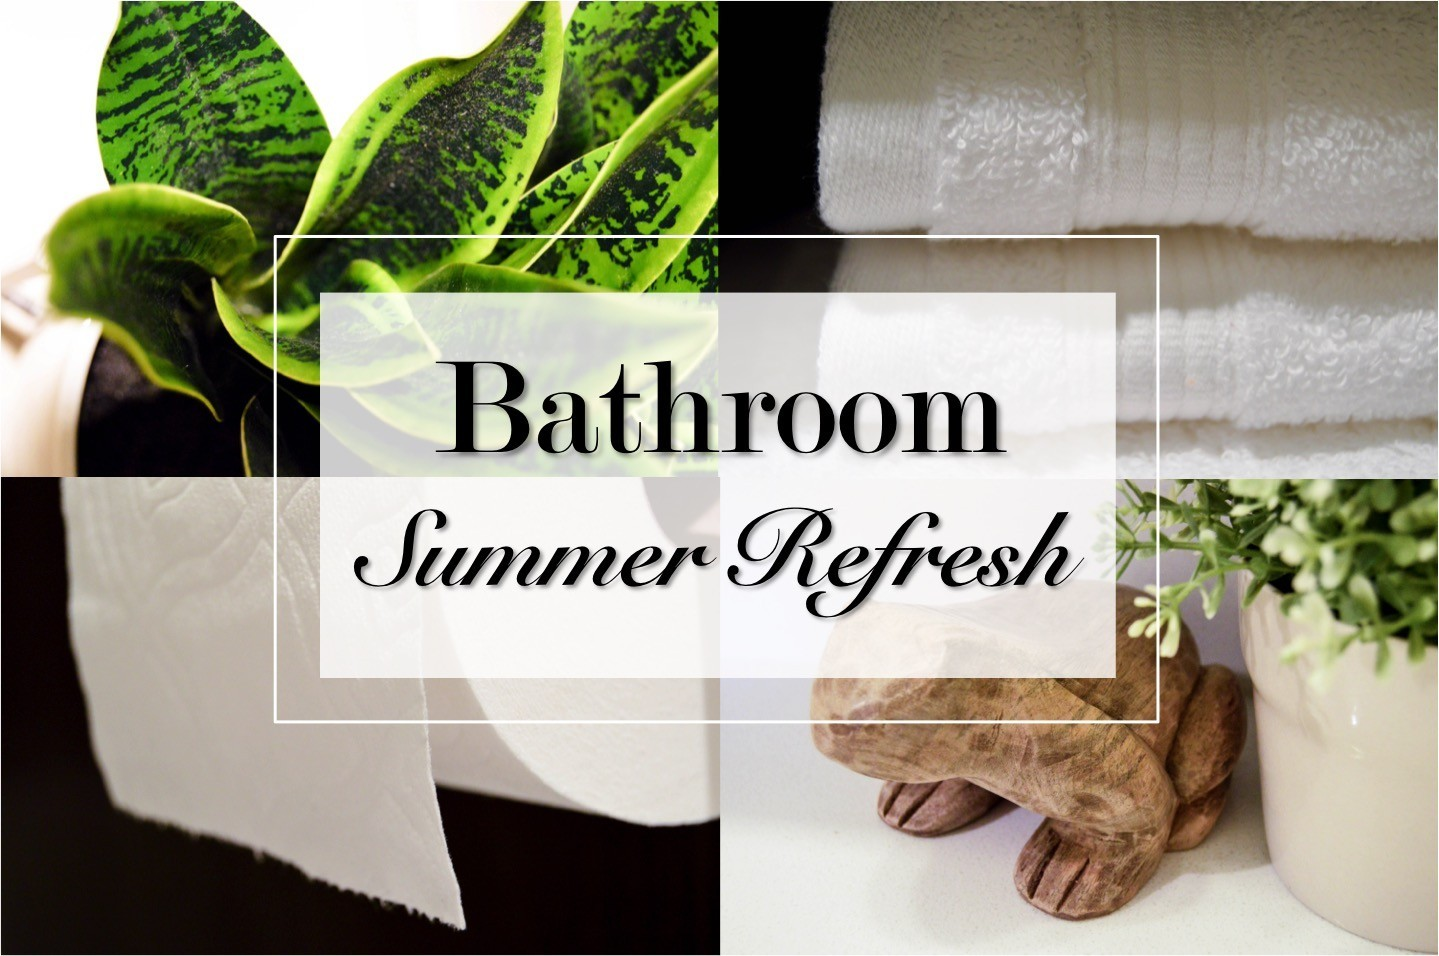 Bathroom summer refresh with summery home decor ideas. A relaxing + classy bathroom sanctuary with an upscale, simple, contemporary, + modern design. By adding a few details, I was able to create a perfectly classy summer sanctuary in my bathroom. I share 5 bathroom summer refresh tips with pictures! Bathroom tour.